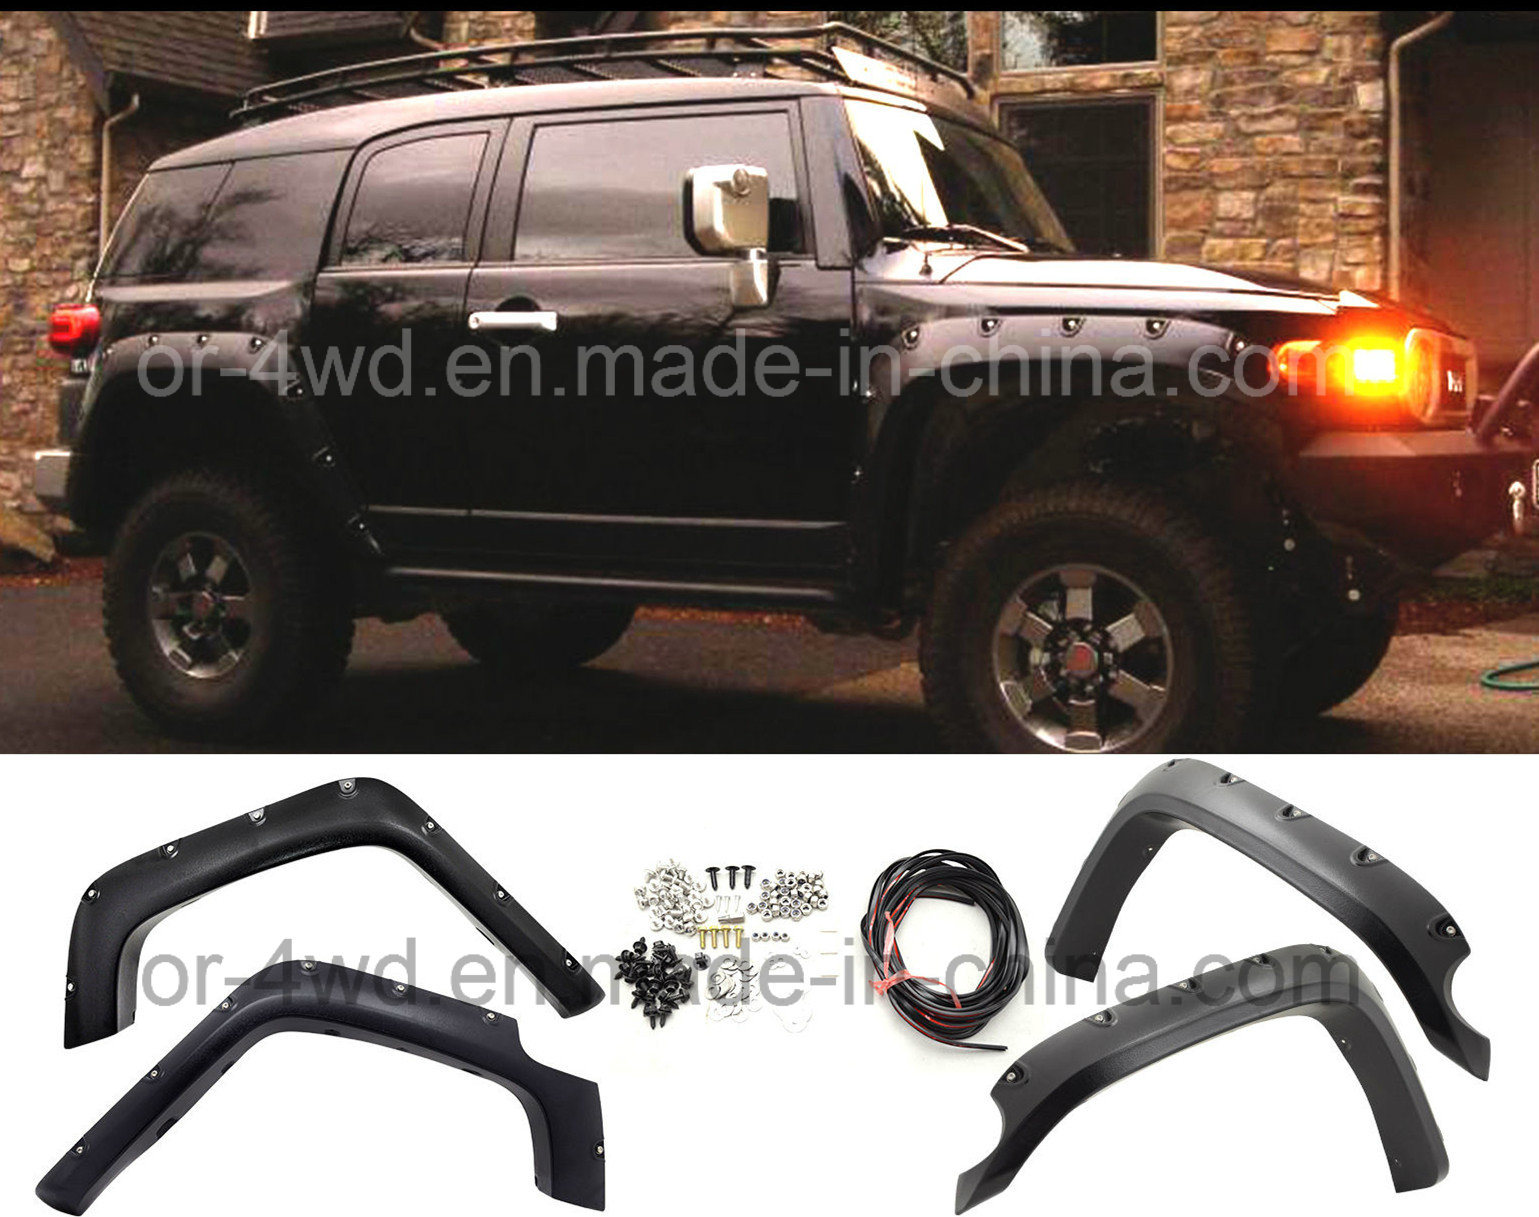 Bushwacker Fender Flares for 07-14 Toyota Fj Cruiser